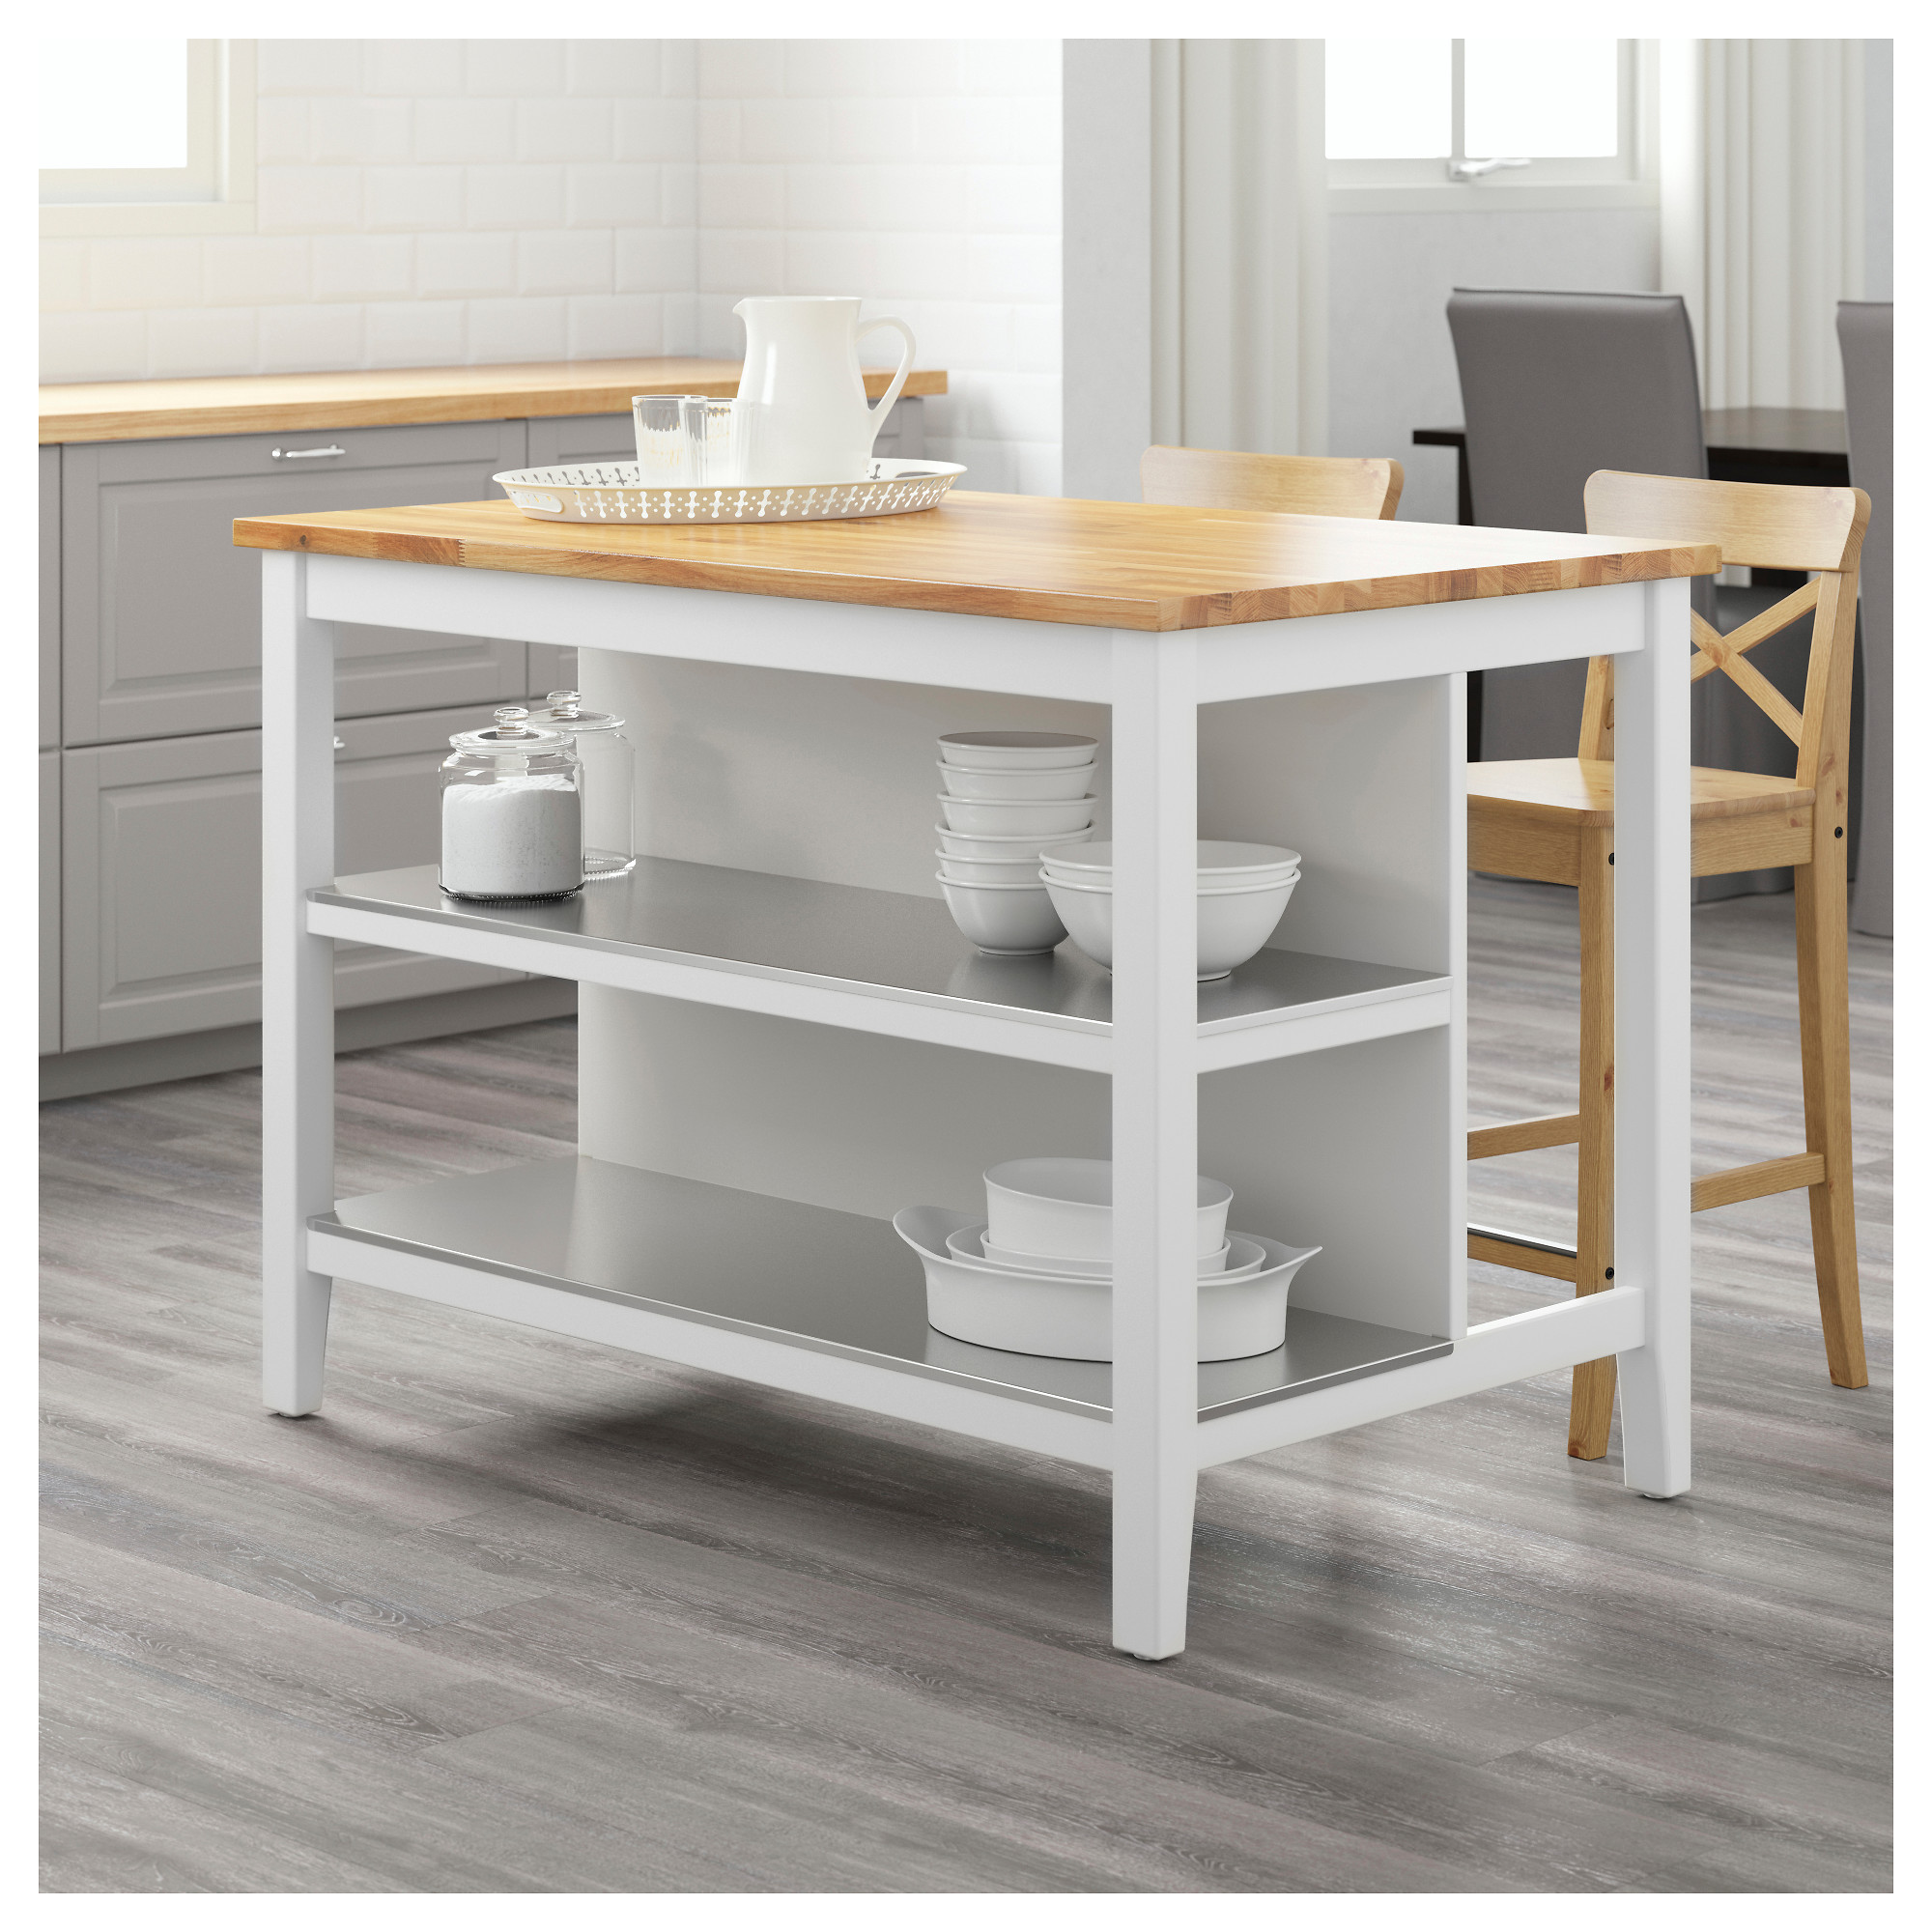 Superieur STENSTORP Kitchen Island   IKEA